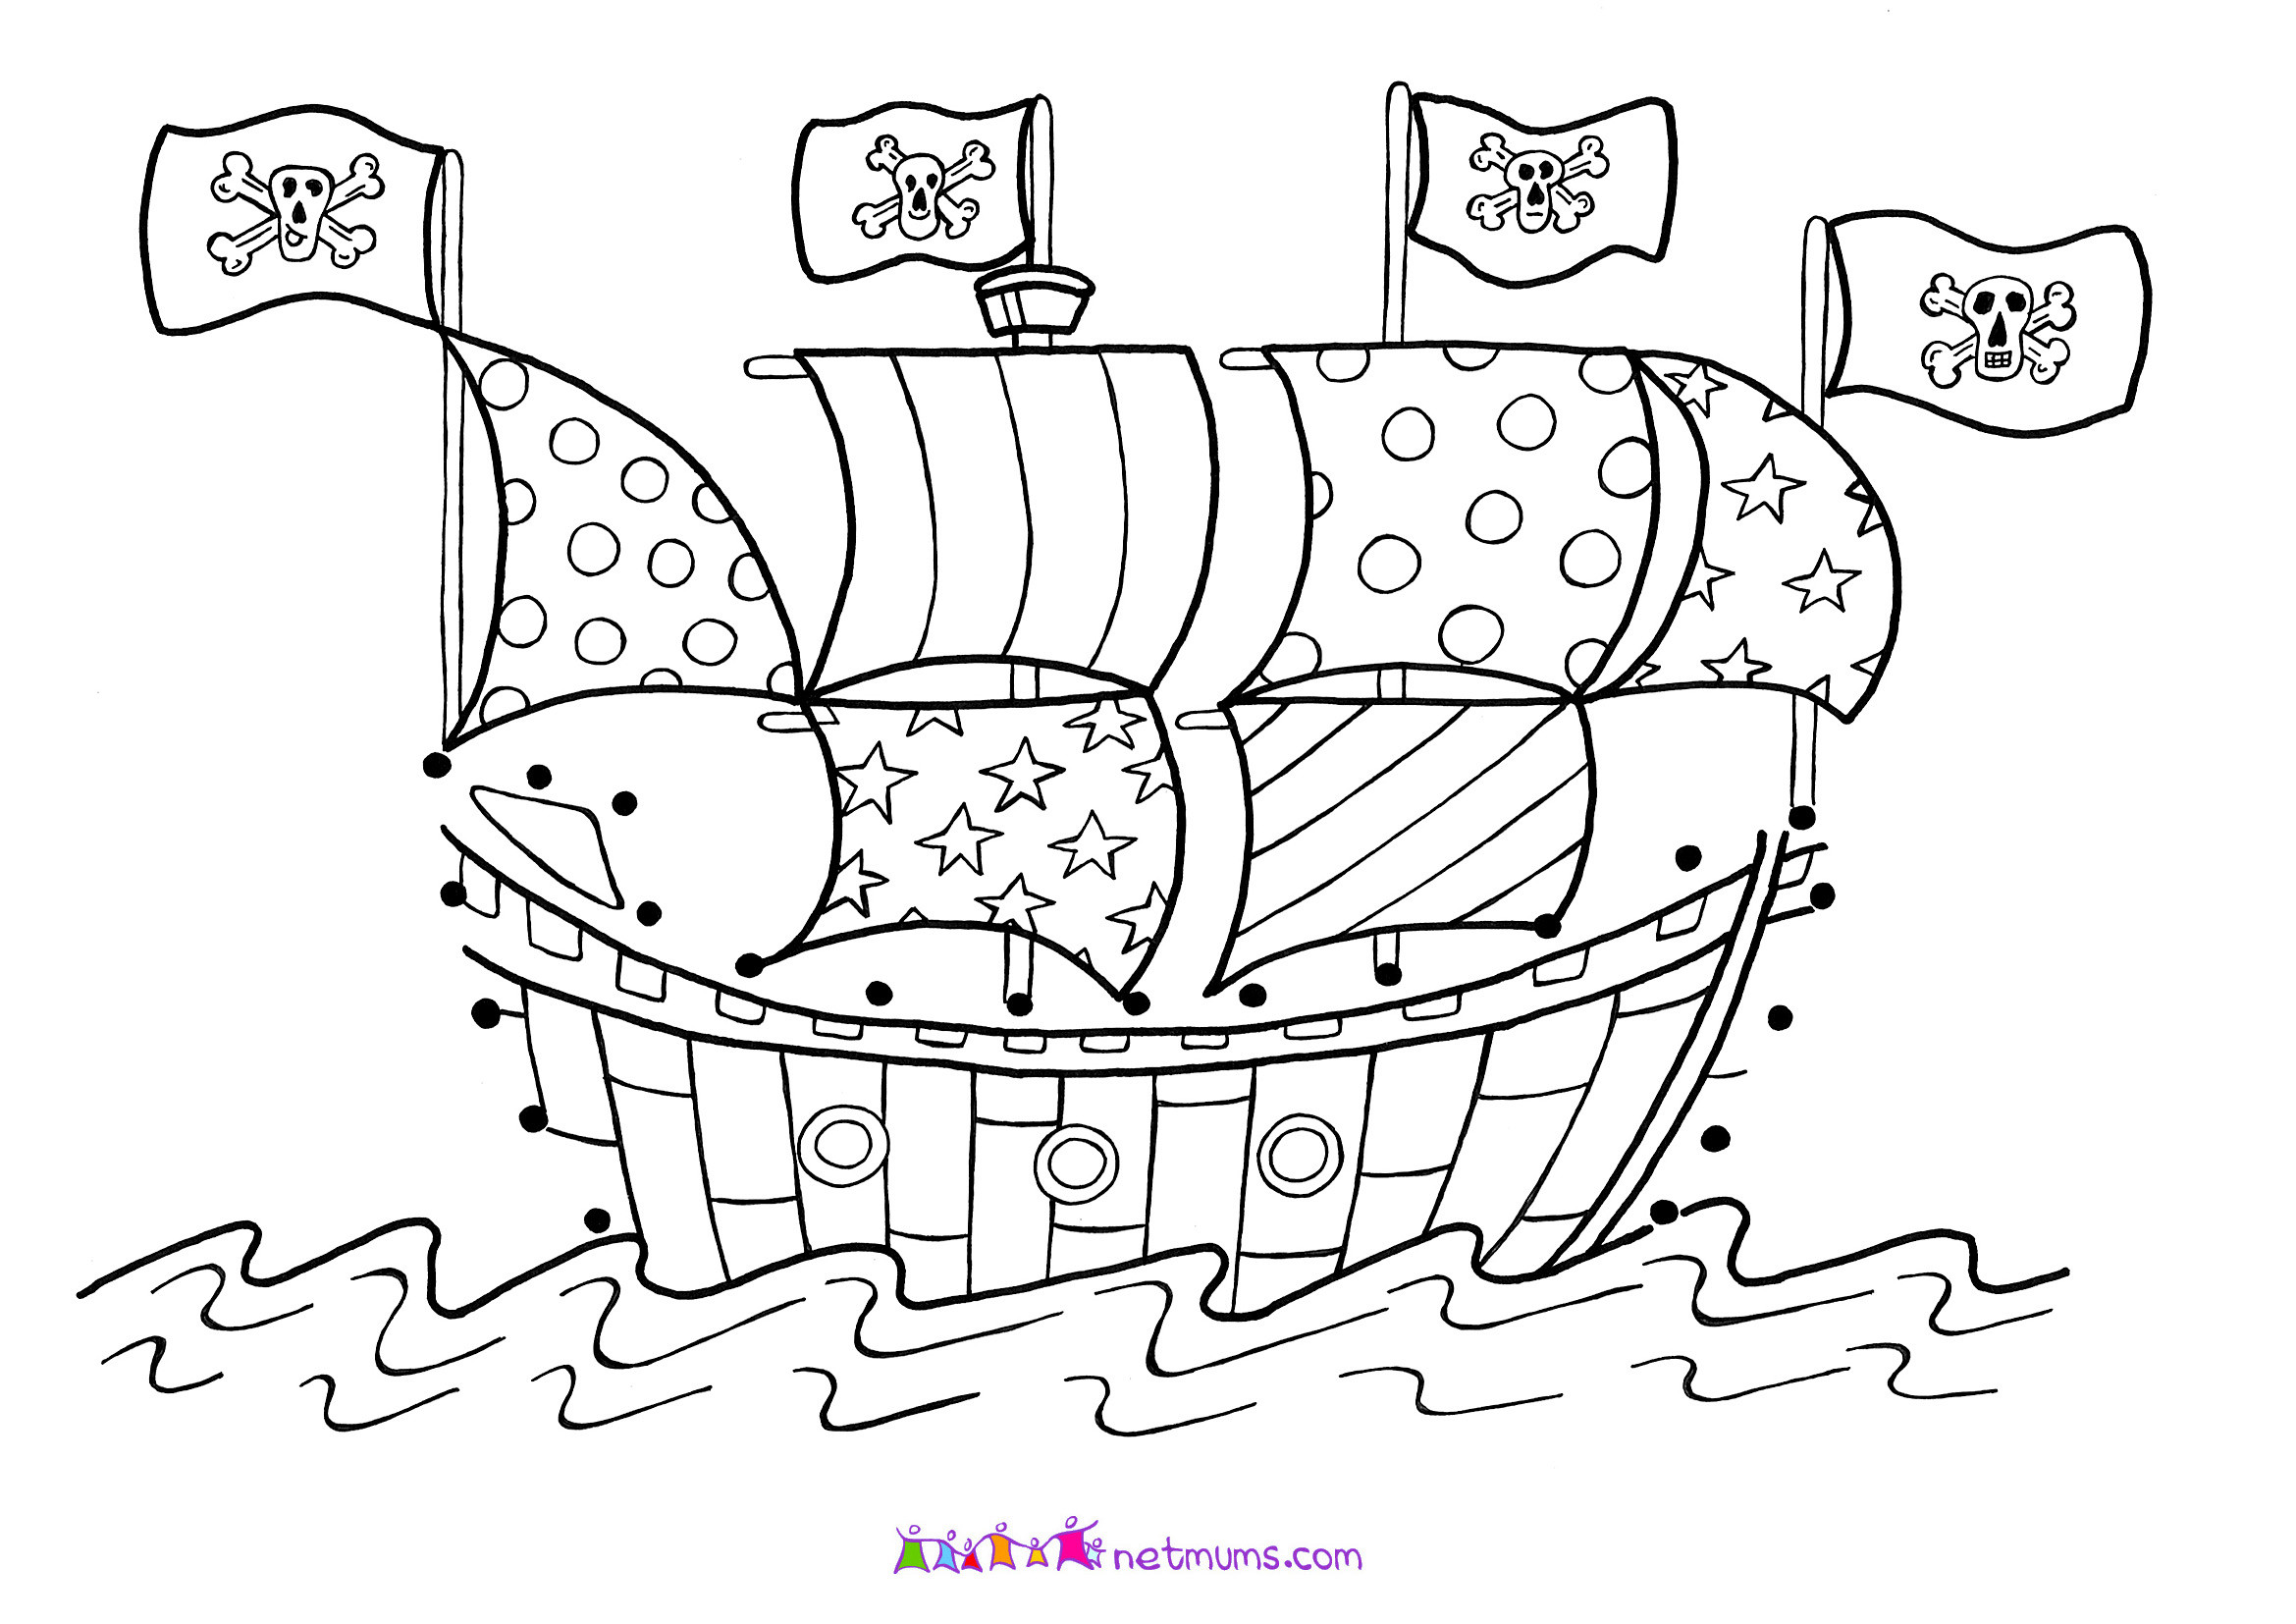 2339x1654 Ships And Boats Coloring Pages Ship General Colouring Rocket Navy